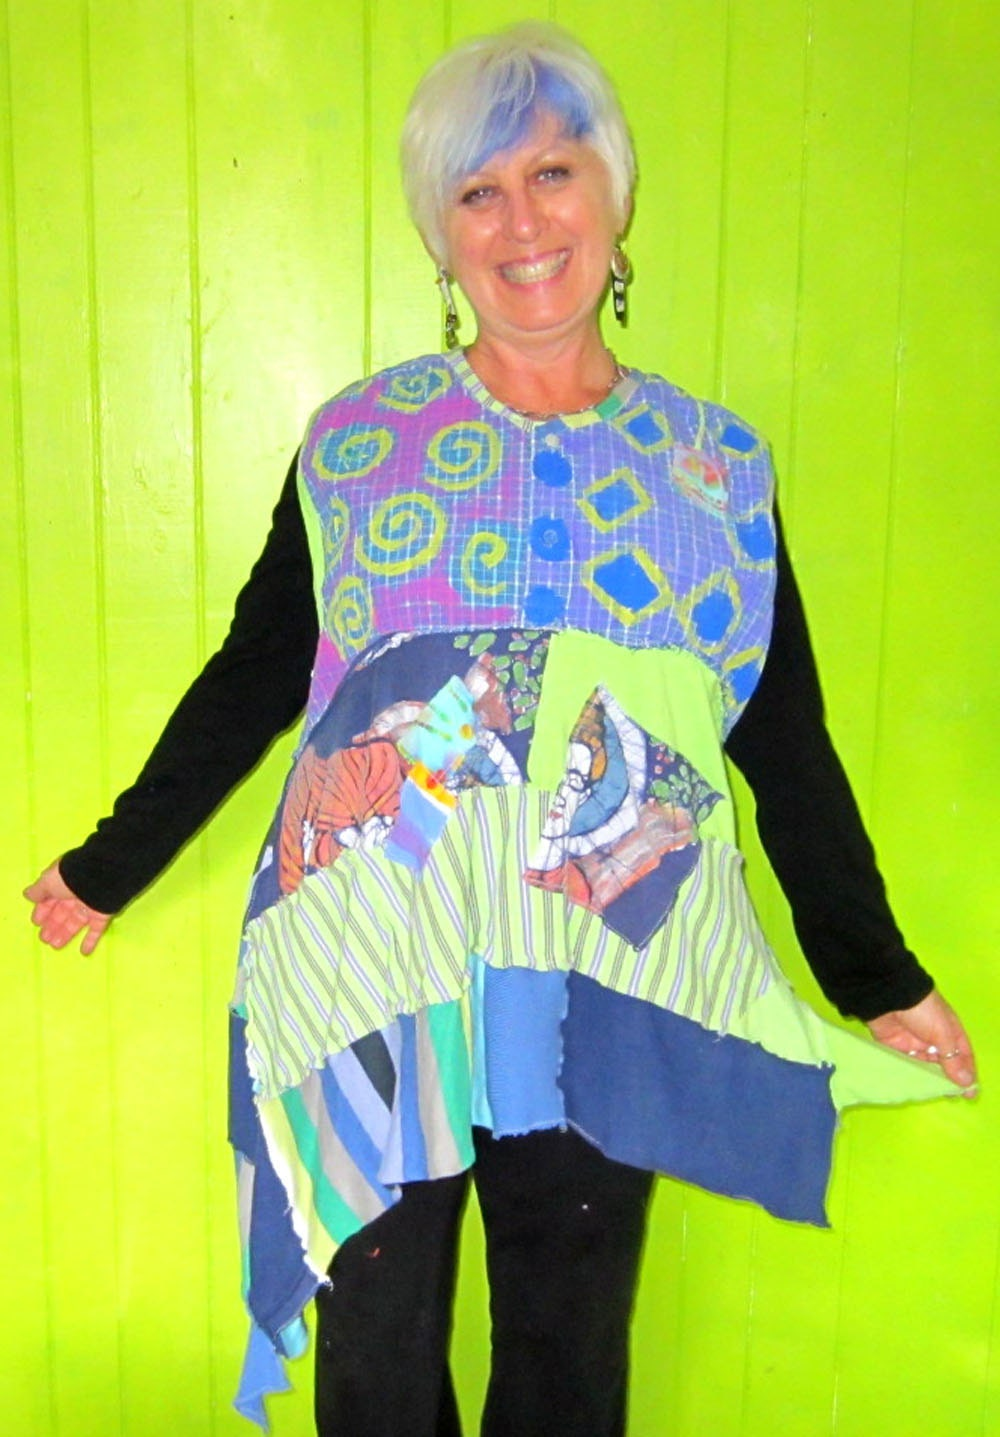 Hand painted Funky Vest or Sleeveless tunic In shades of Blue and Green SALE one size fits most